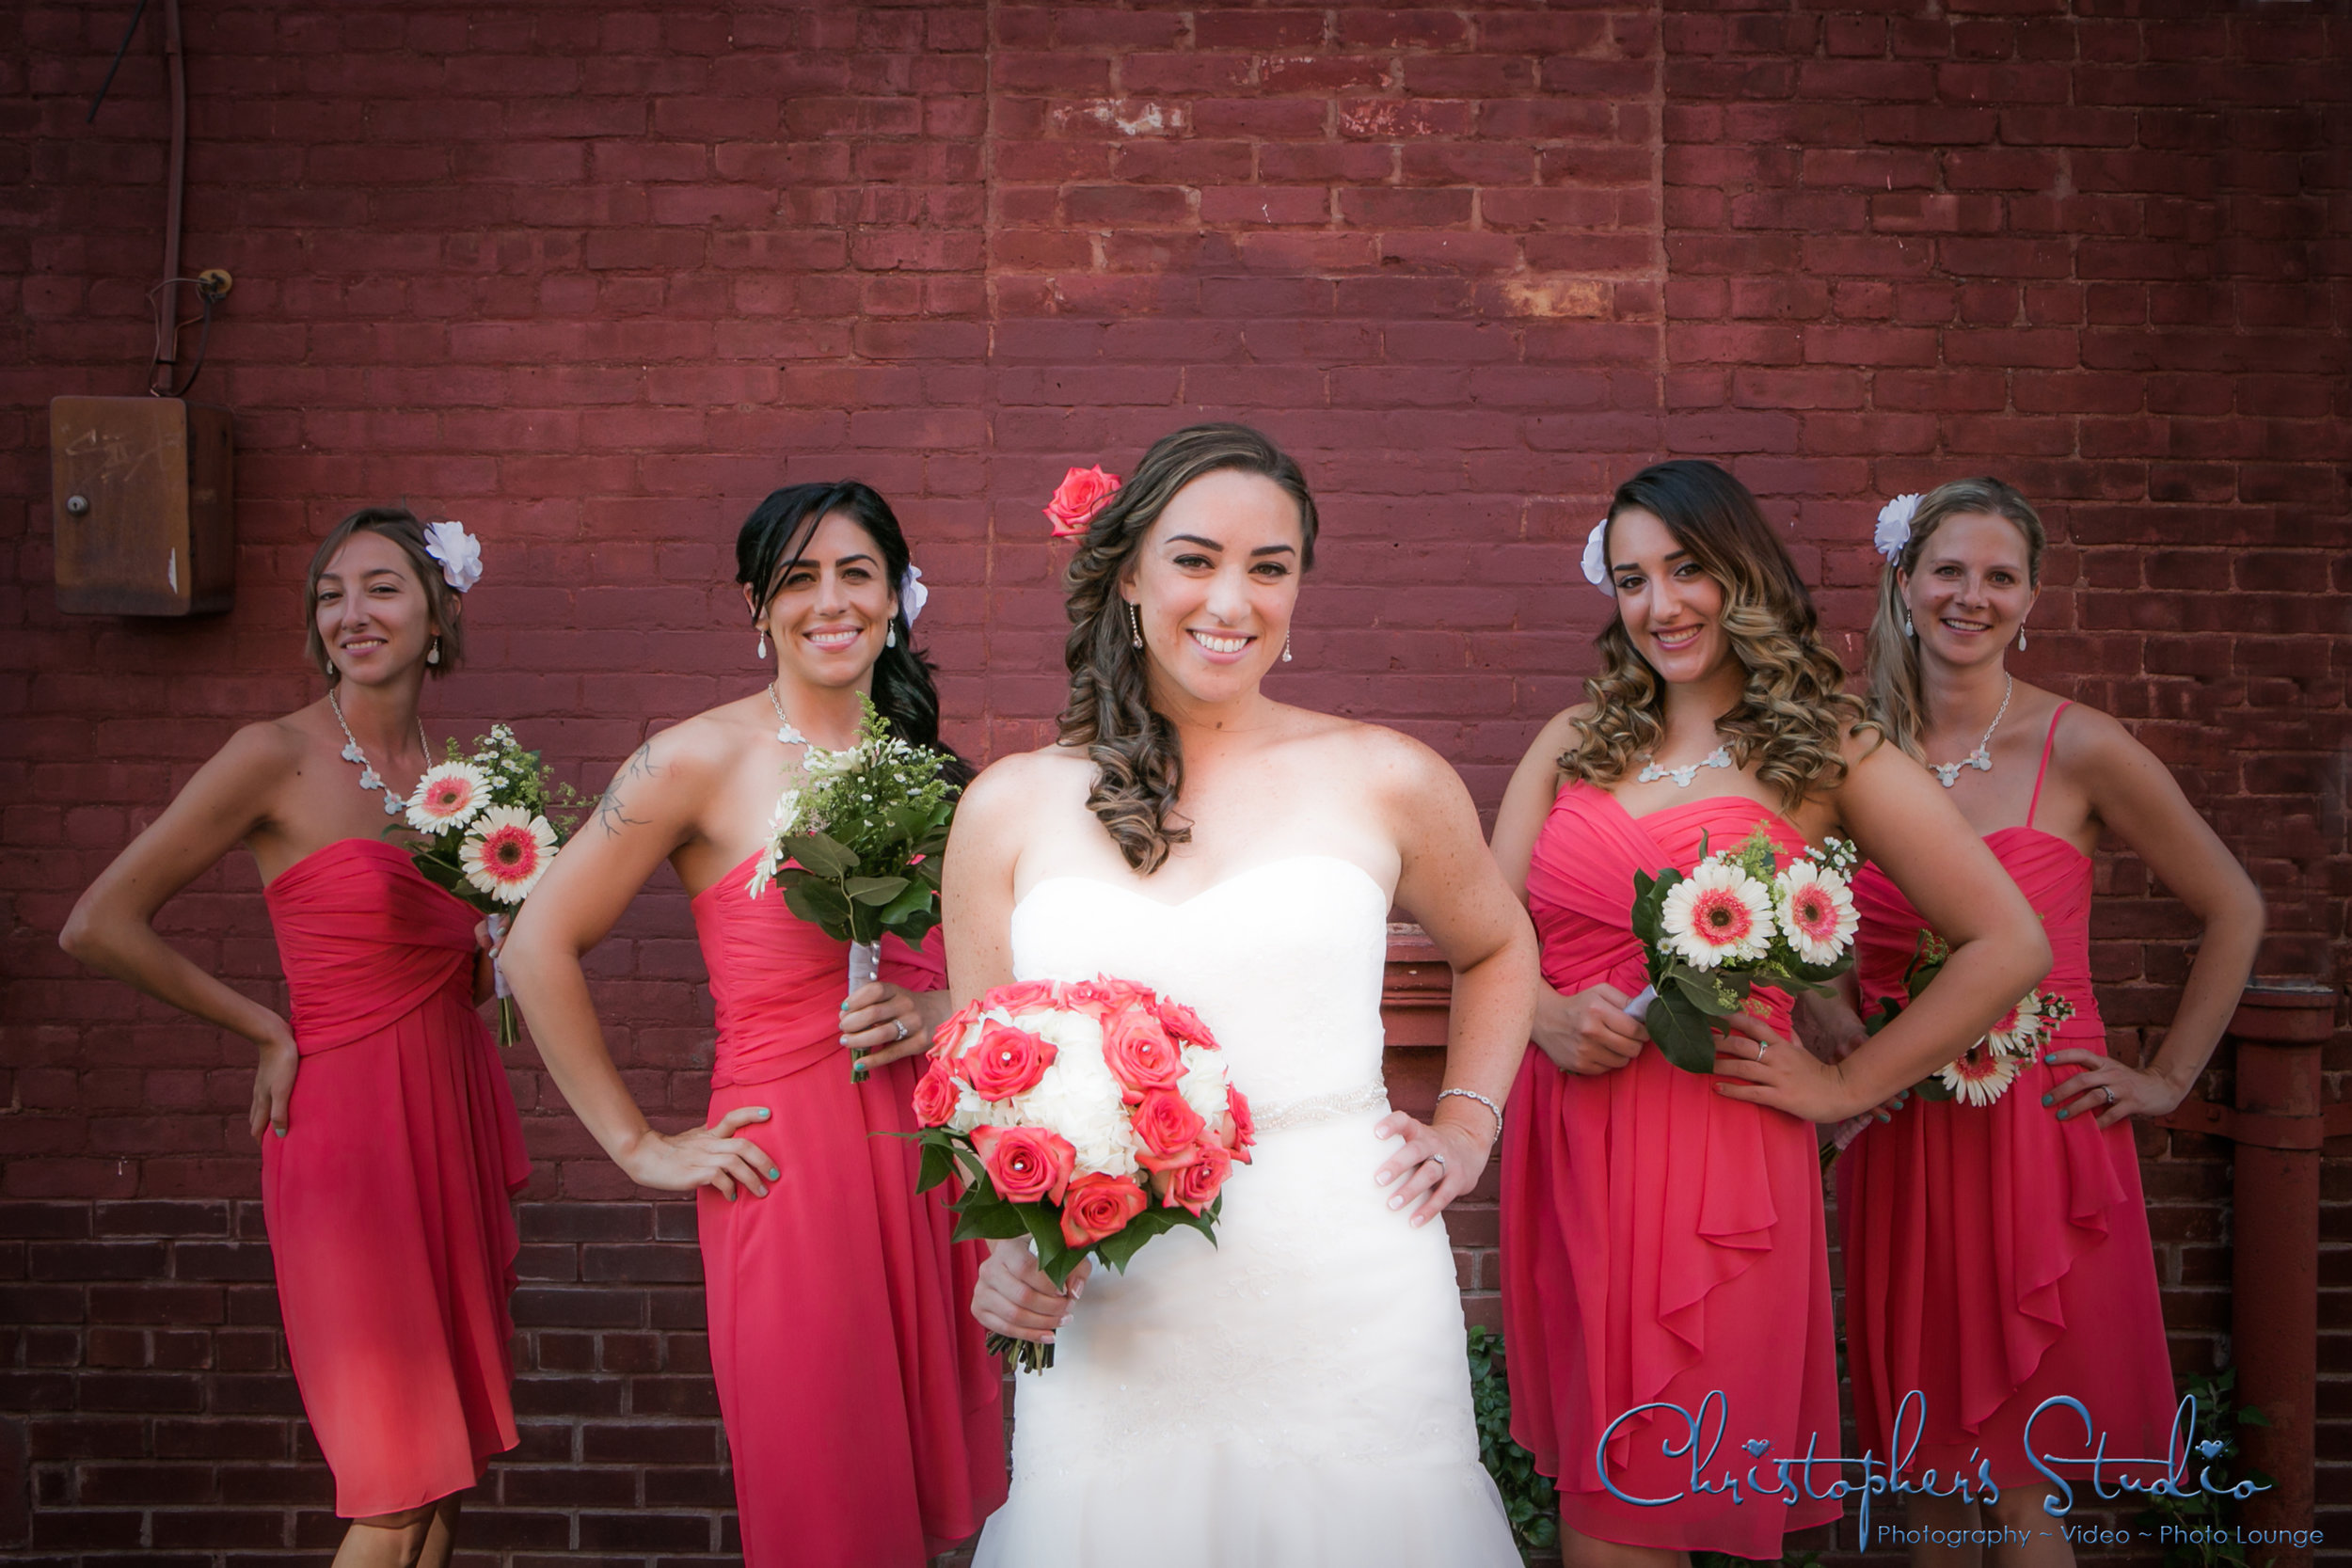 Bride with Brick Wall